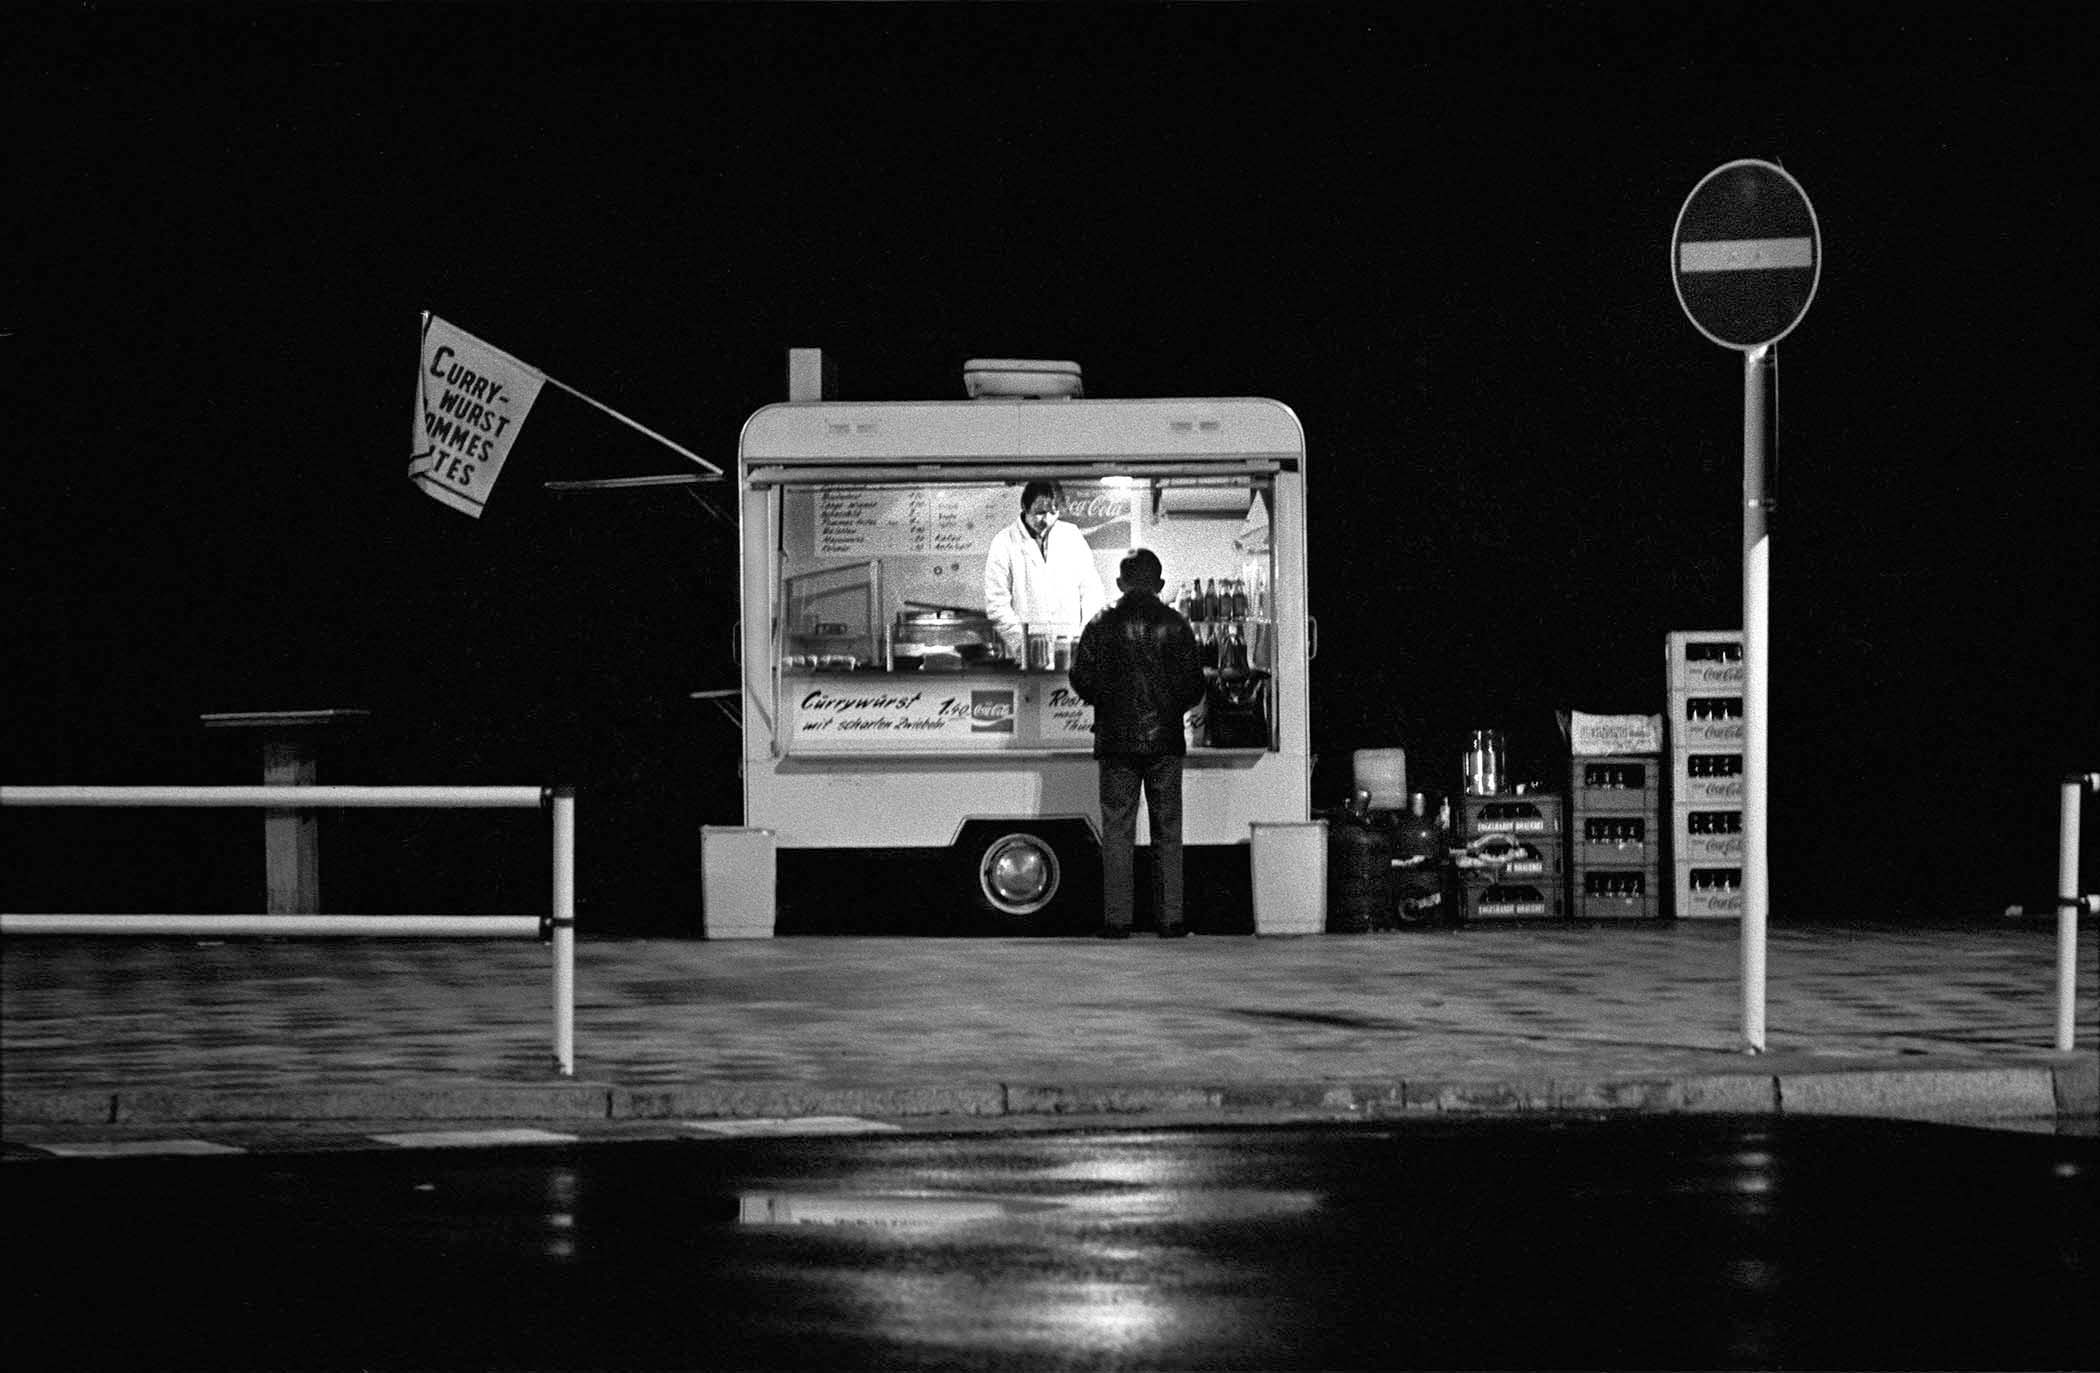 berlin3_21. Currywurst Vendor, West Berlin,1974